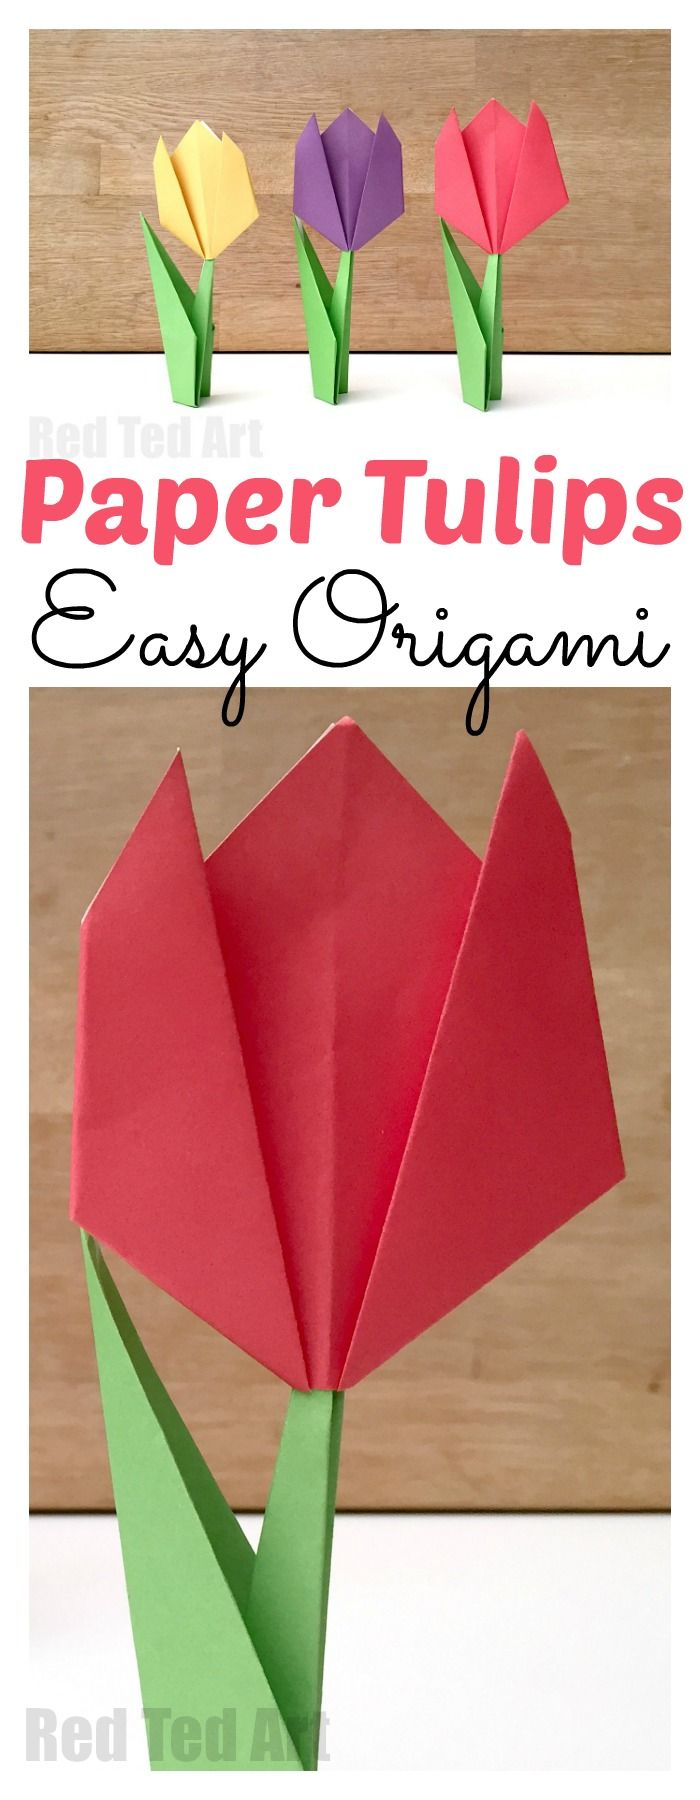 Easy Origami For Kids Red Ted Art Make Crafting With Kids Easy Fun In 2020 Tulip Origami Origami Easy Origami For Beginners